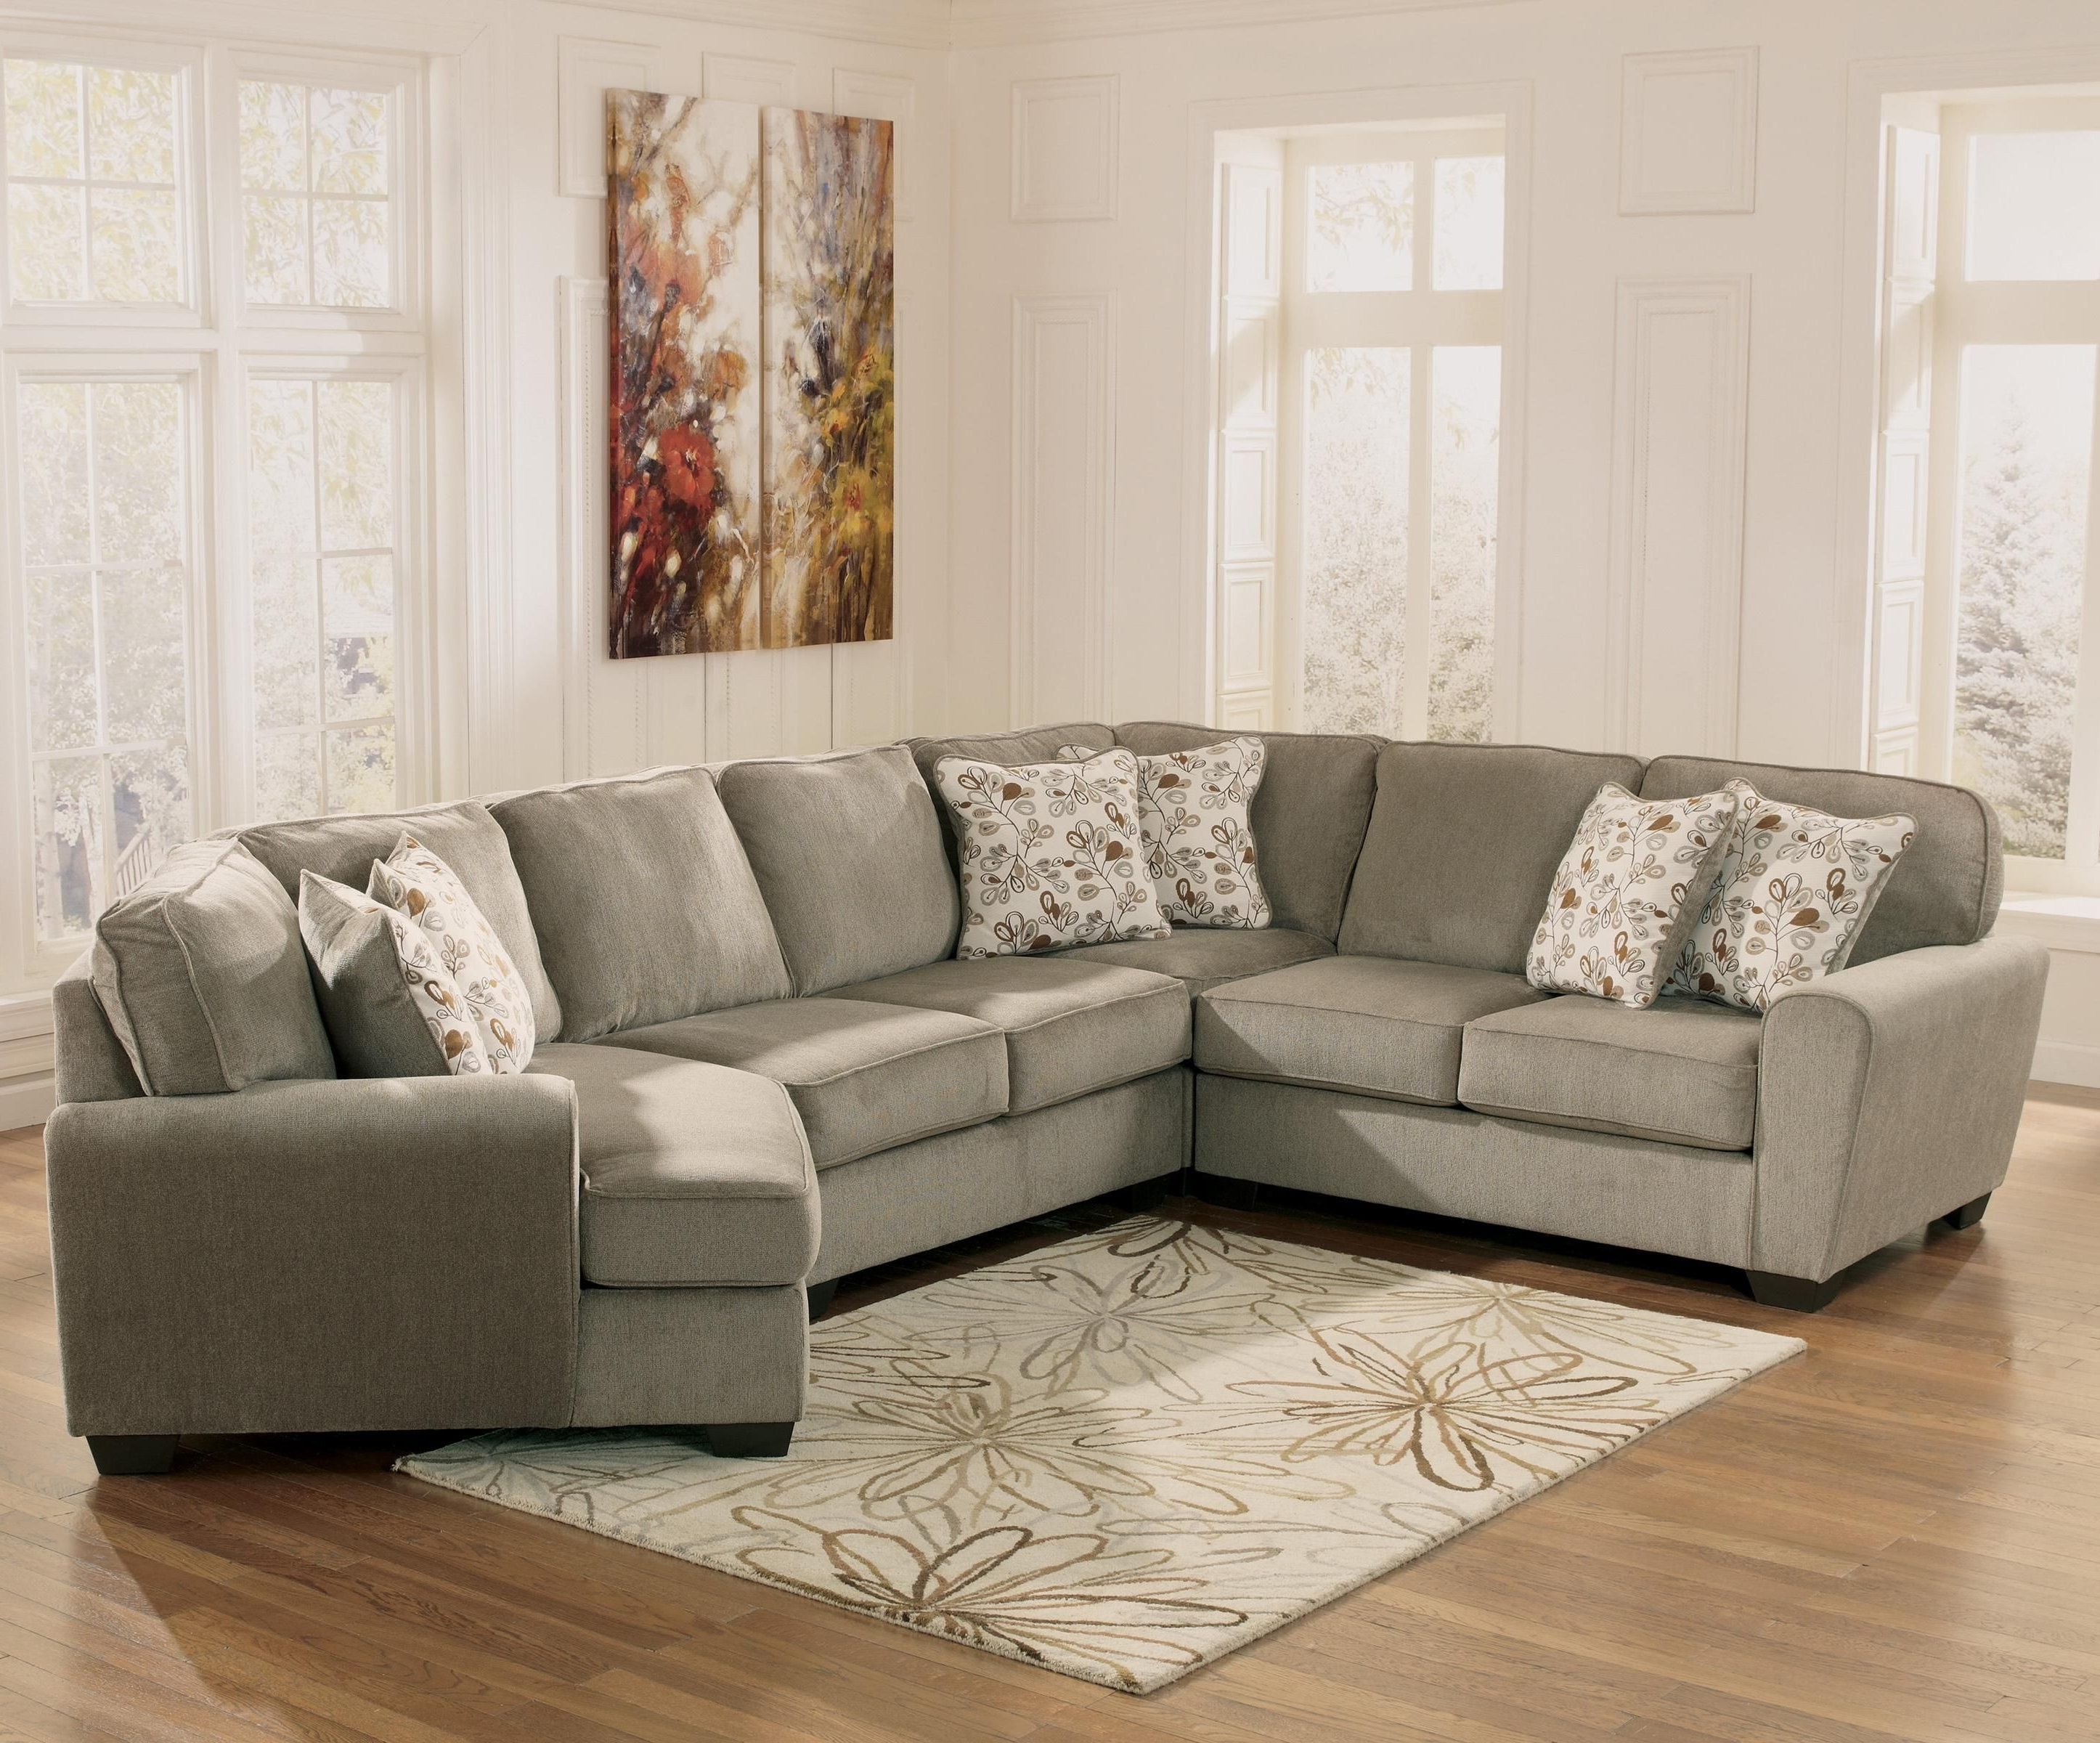 Patola Park – Patina 4 Piece Small Sectional With Right Cuddler In Favorite Jackson Ms Sectional Sofas (View 15 of 20)